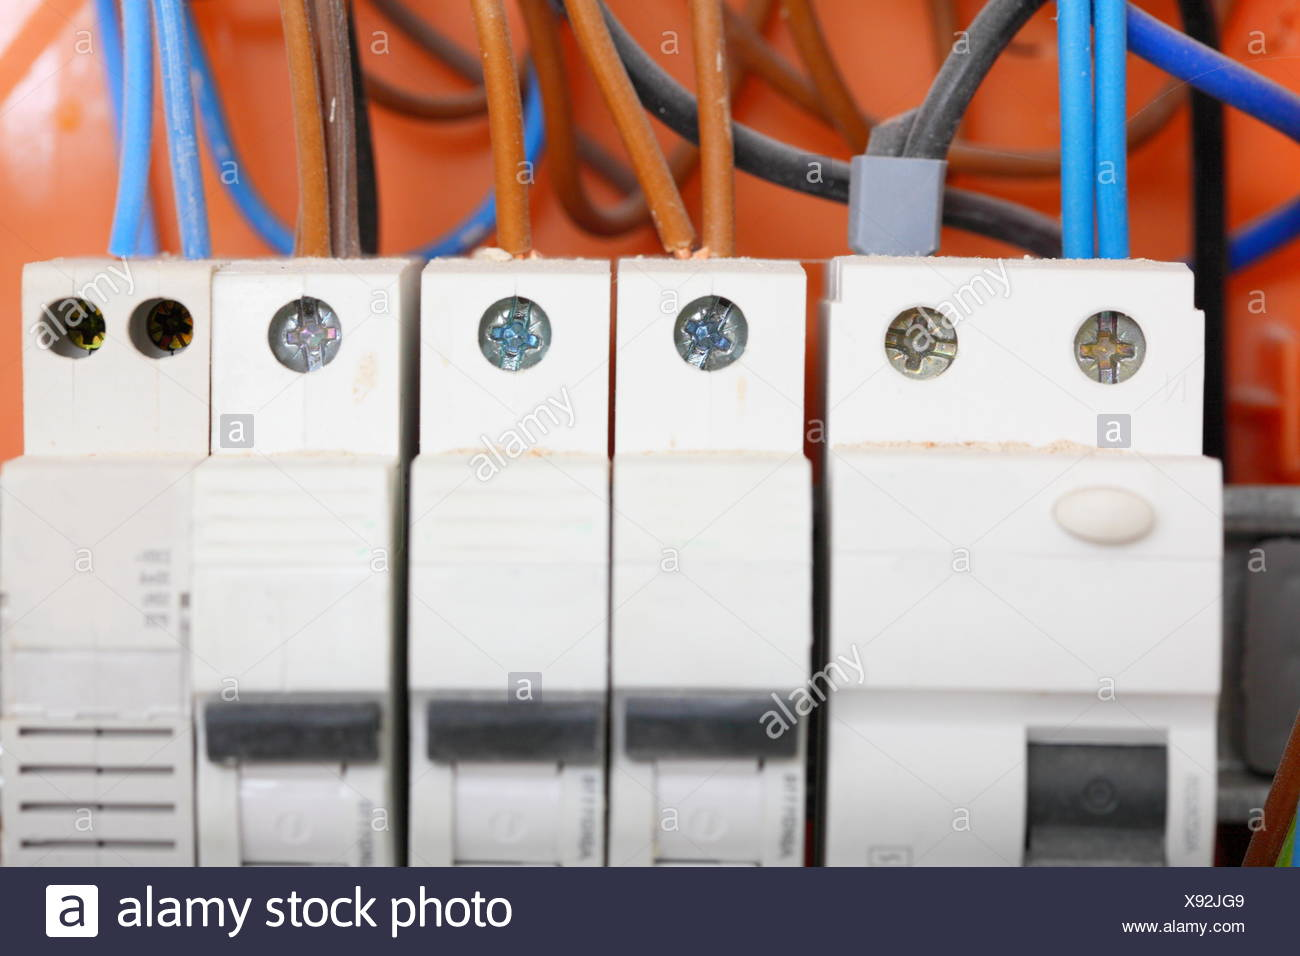 Electrical Contactors Stock Photos Fuse Electric Panel Boxes Box With Fuses And Image